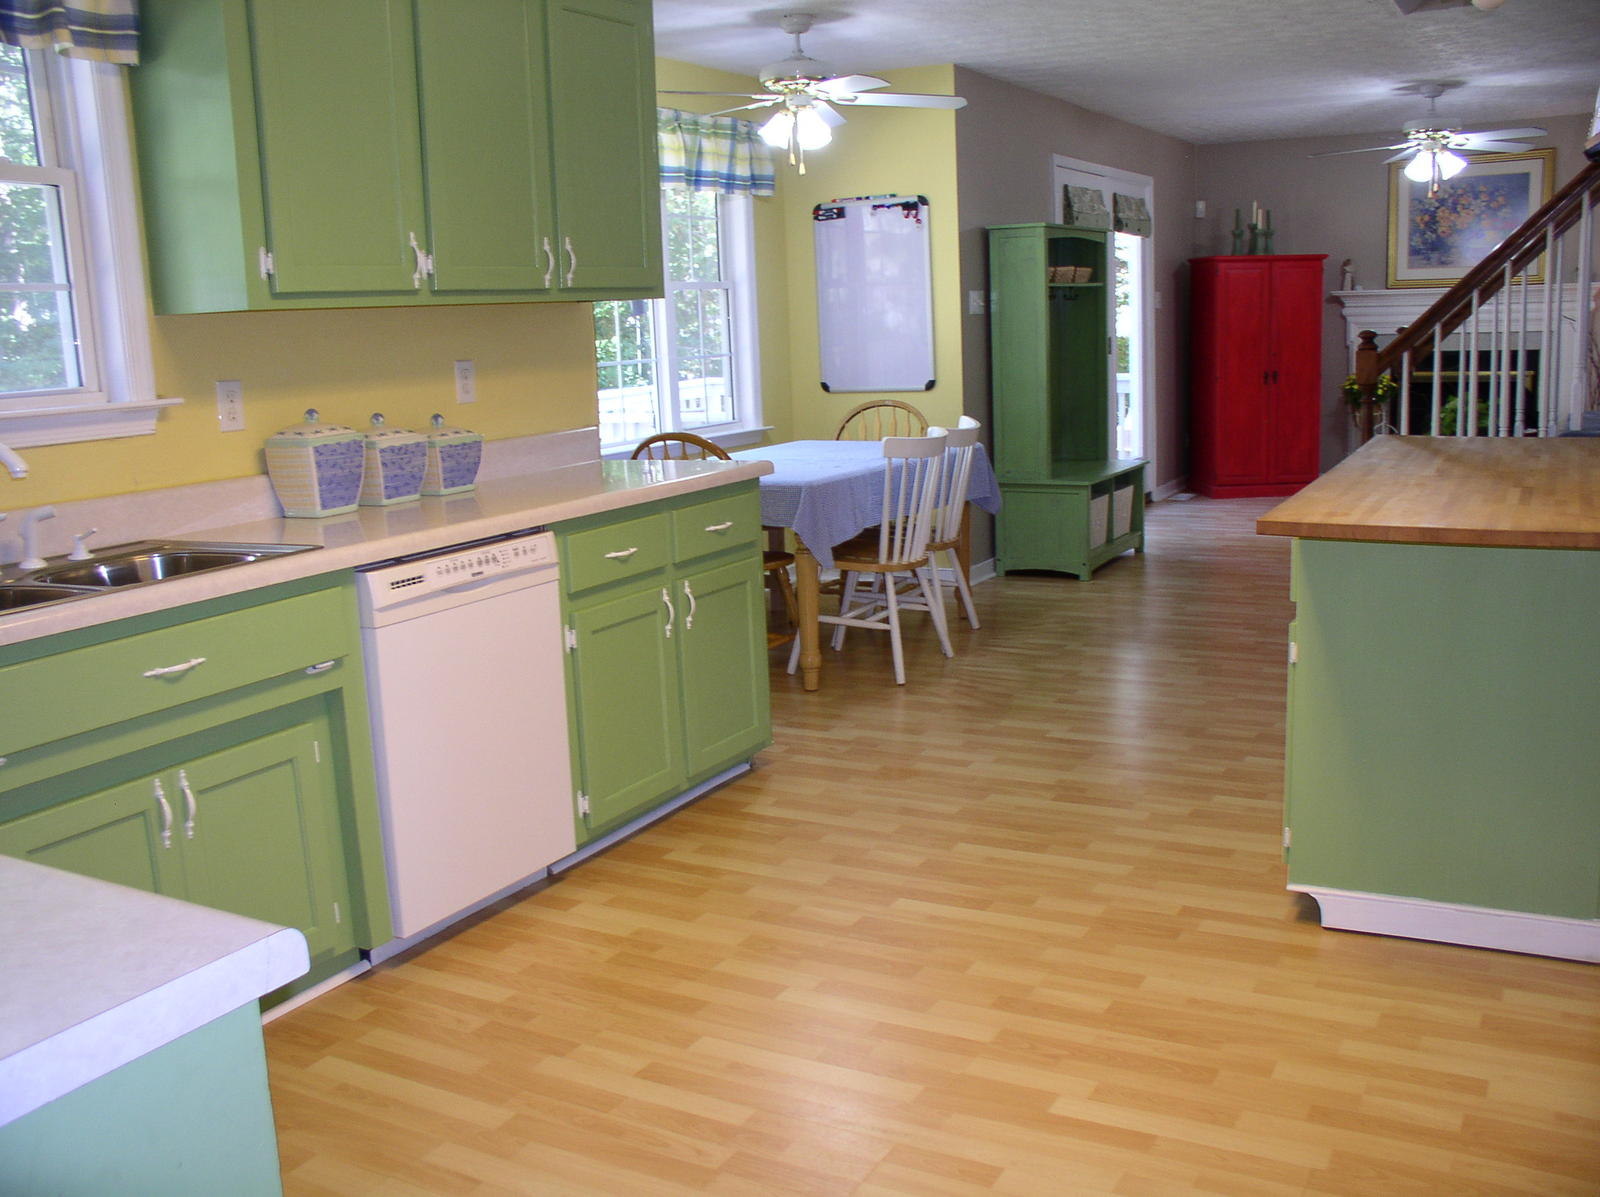 Painting Your Kitchen Cabinets  Painting Tips From the Pros